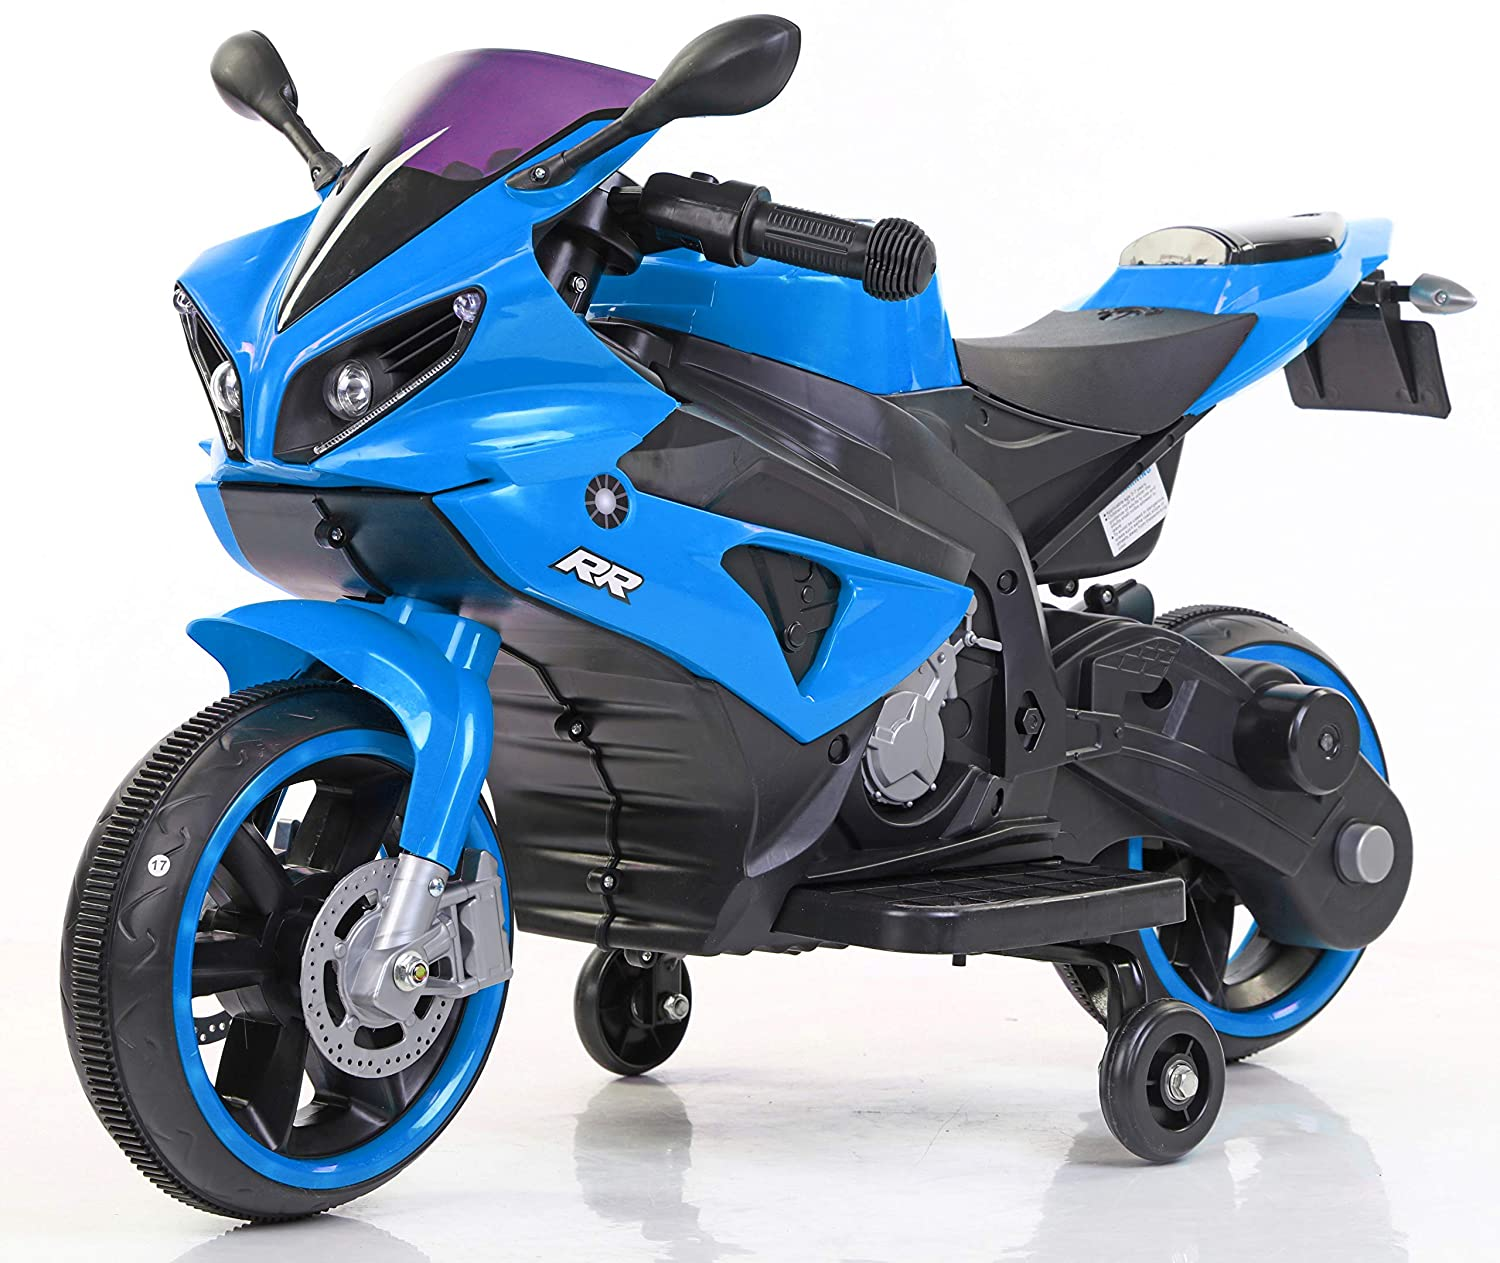 Toy House Mini Yamaha R1 Bike for Kids review